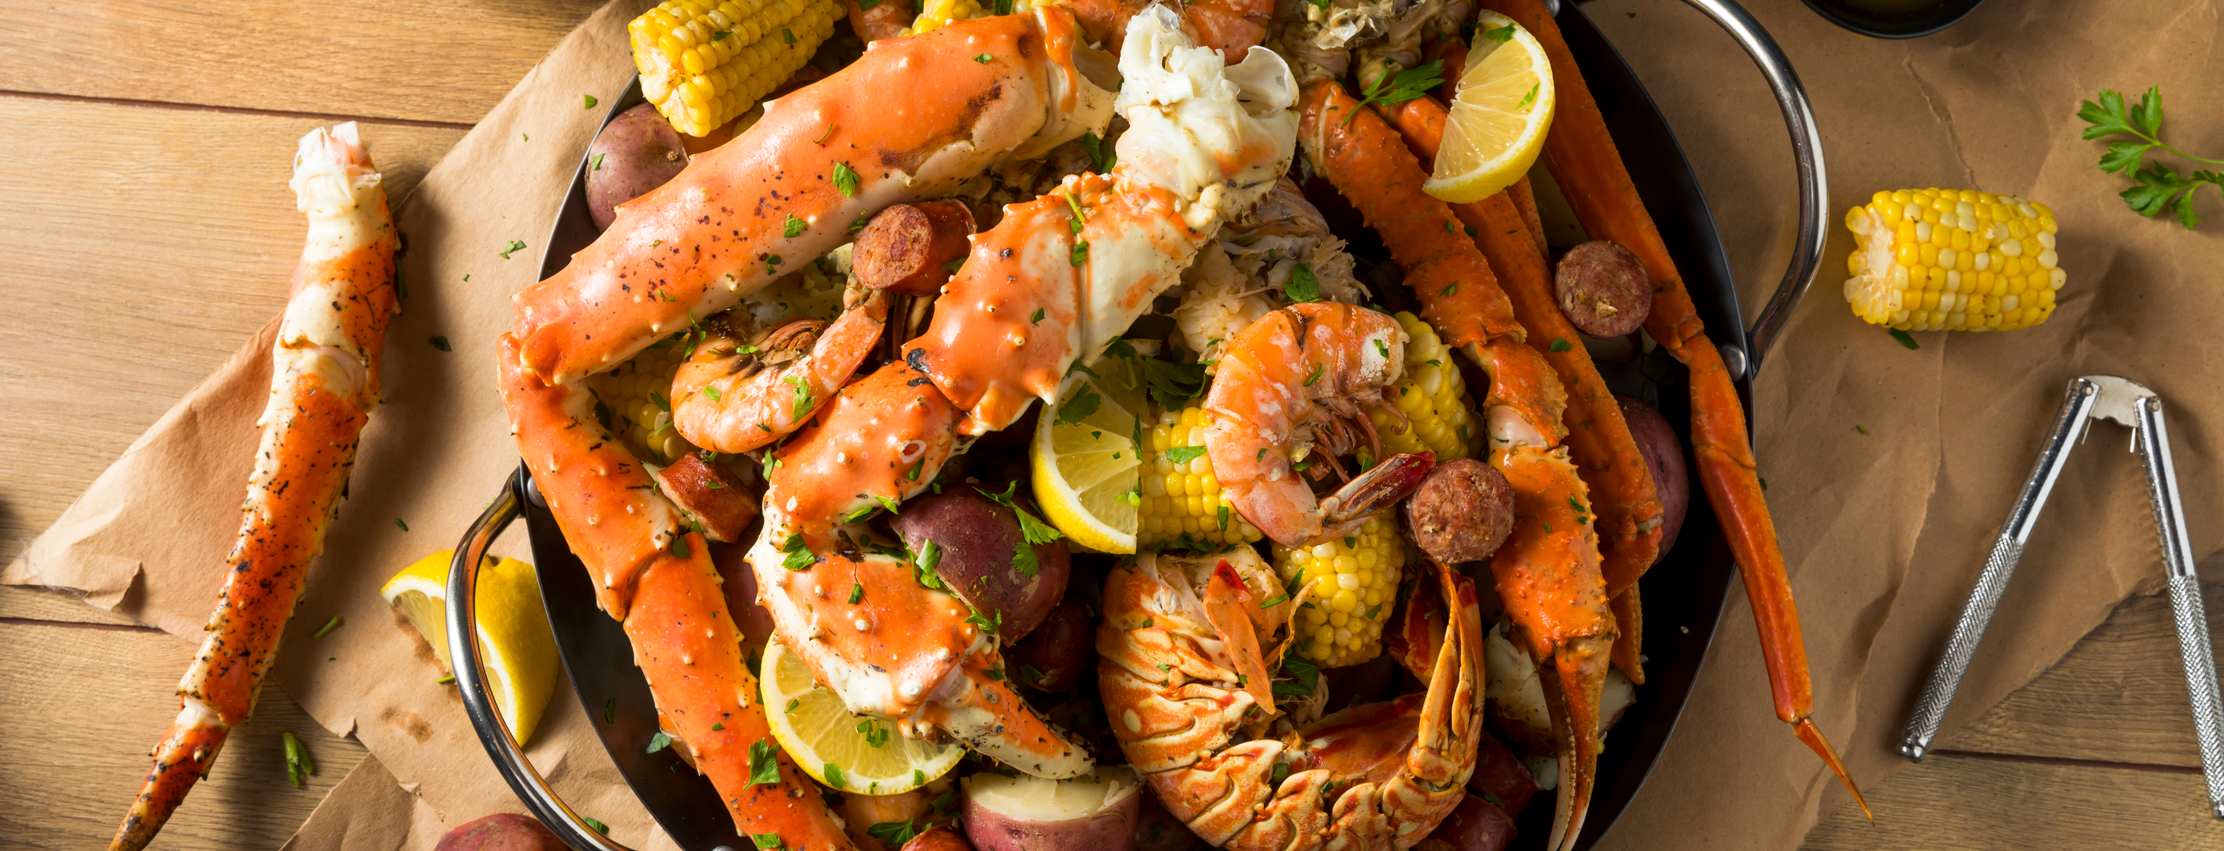 Using Your Grill for a Seafood Boil